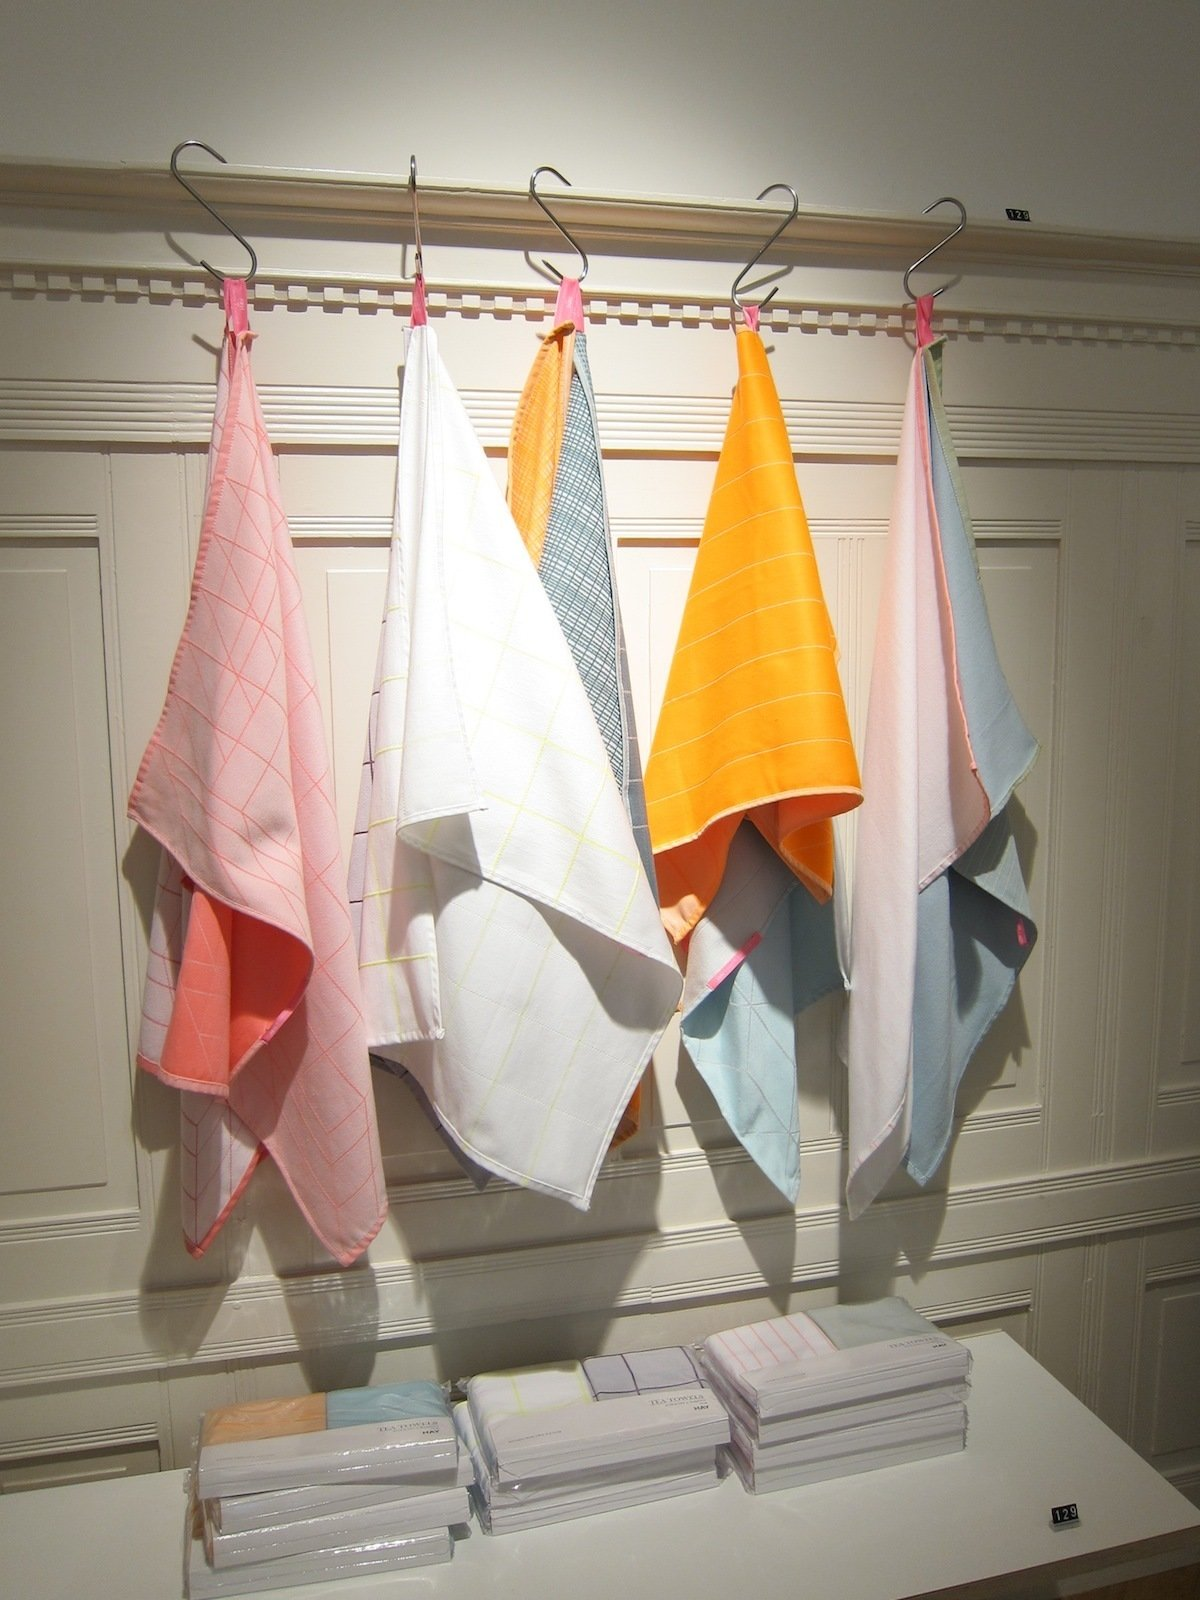 I bought my friend a set of these bright and graphic dishtowels, designed by the Dutch duo Scholten & Baijings.  A Visit to HAY Copenhagen by Jaime Gillin